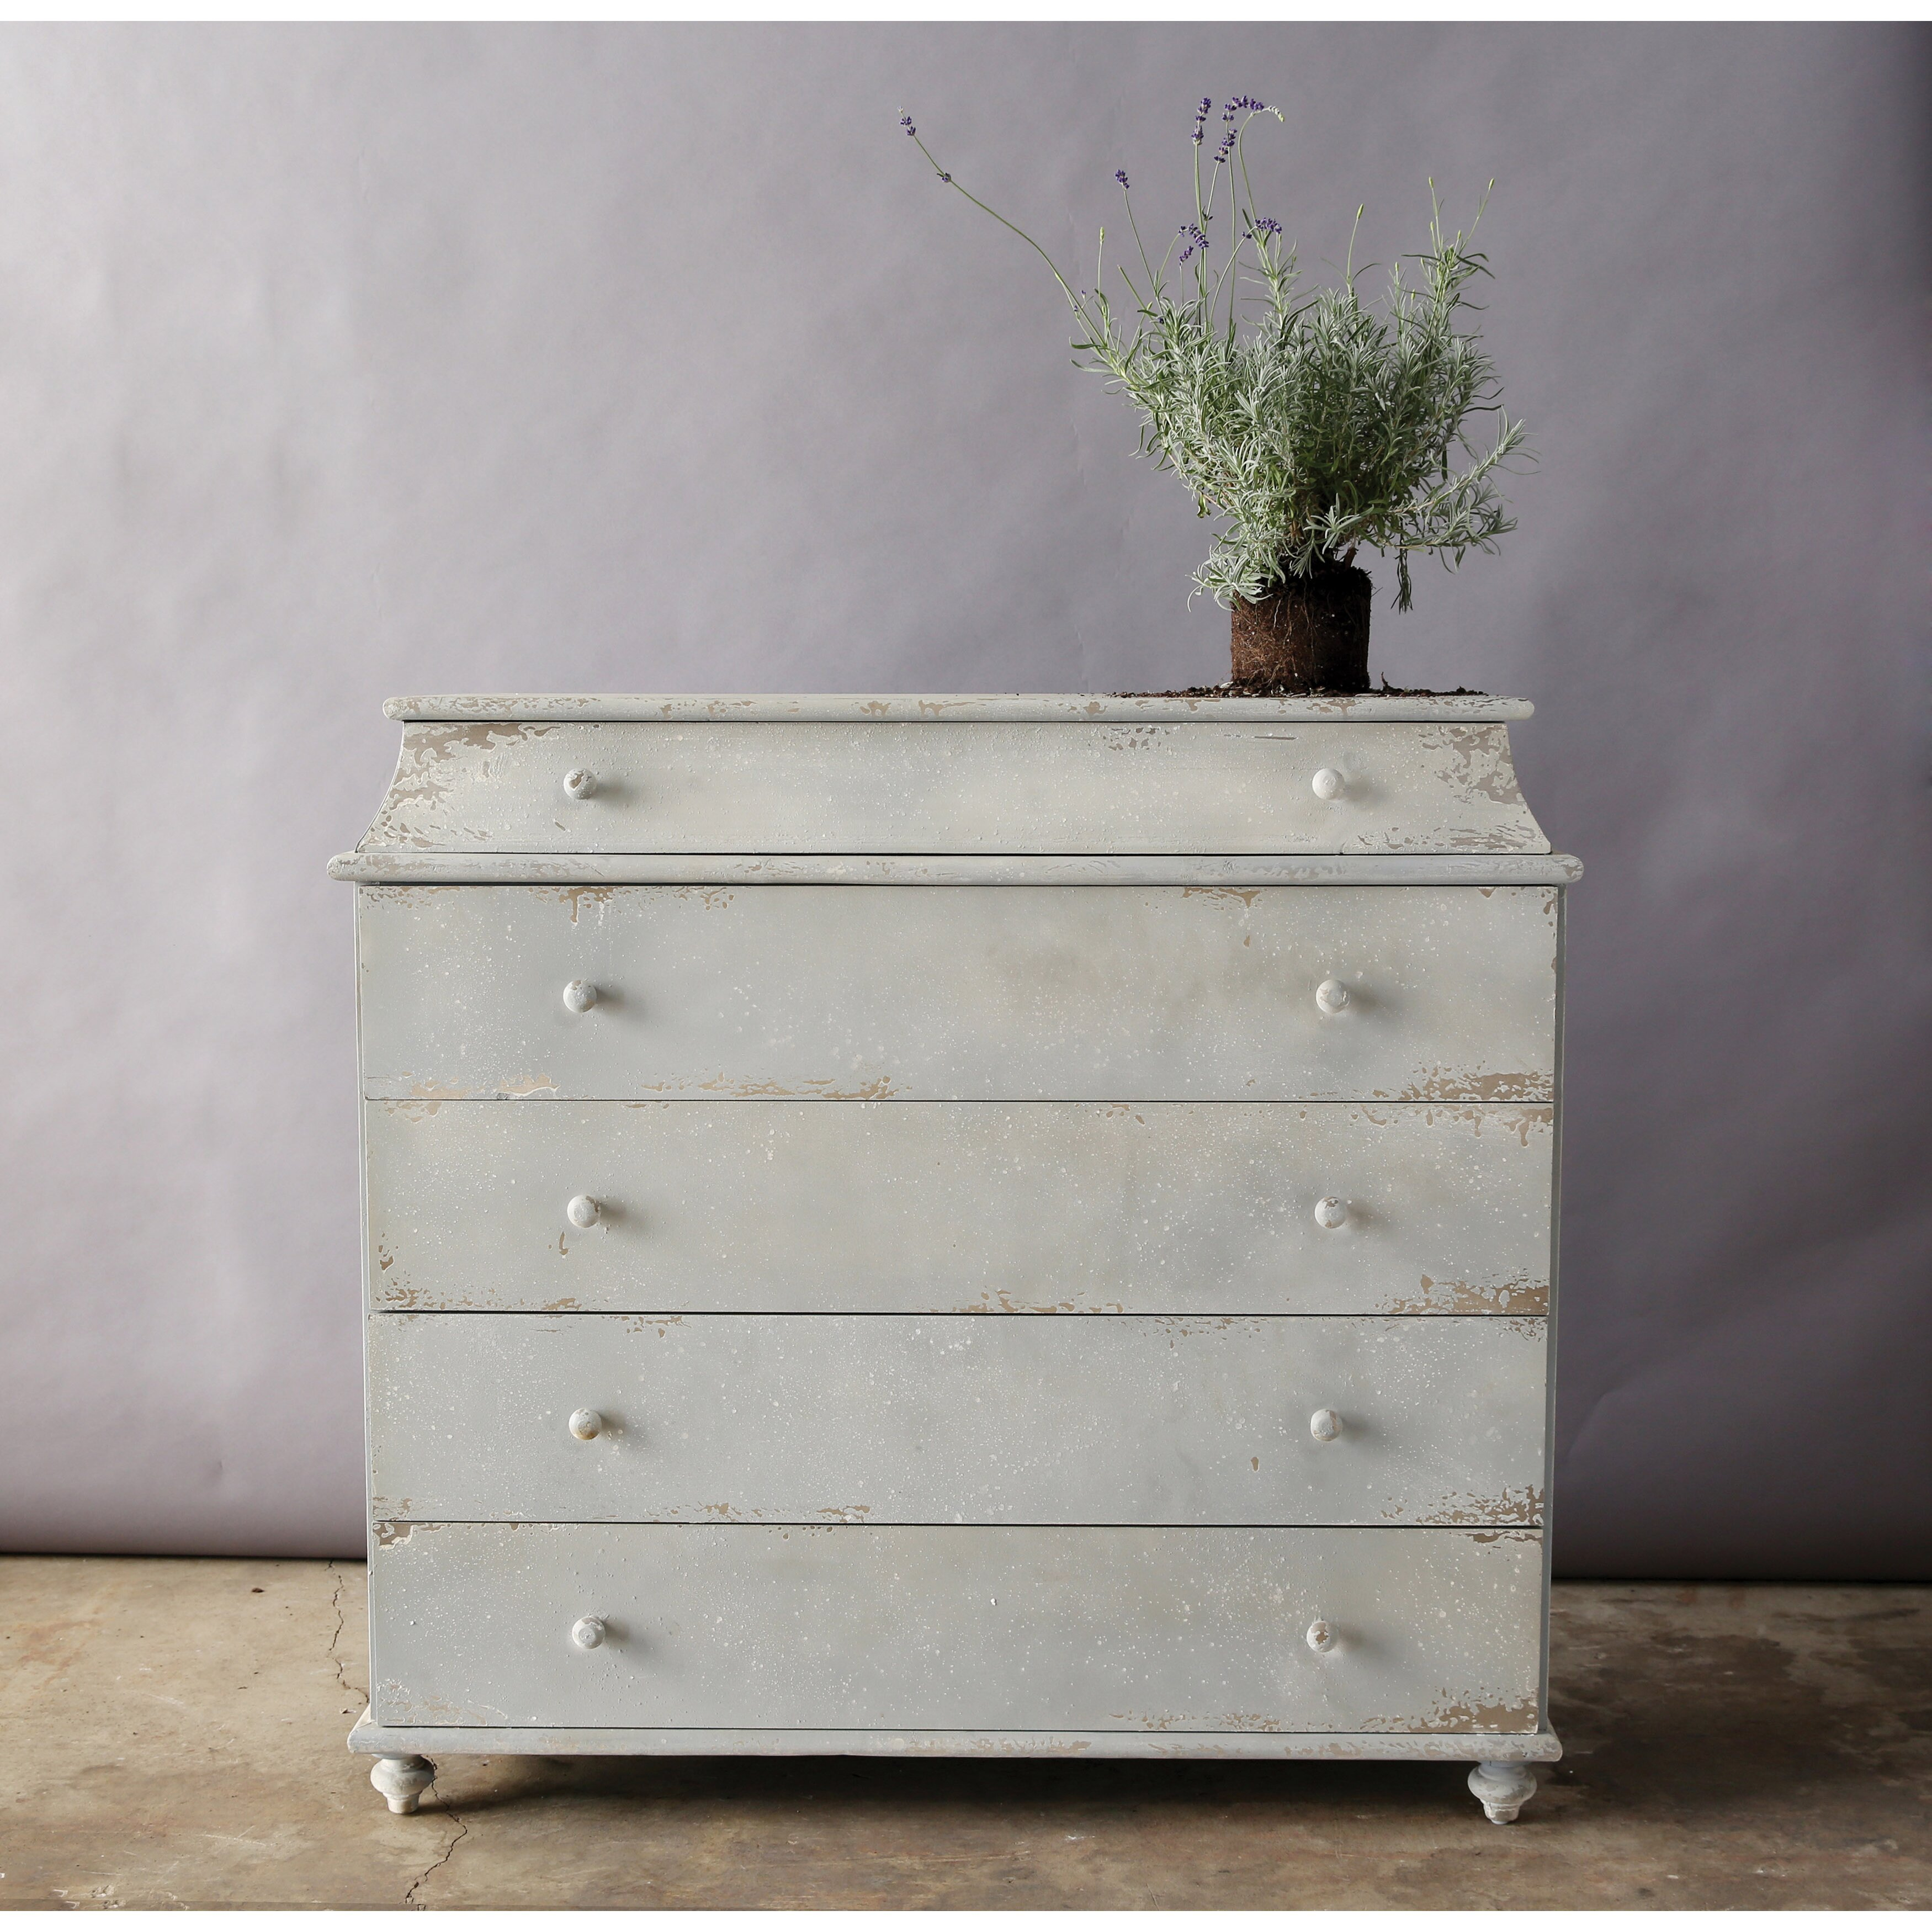 Ikea Off White Rug Release Date: Turn Of The Century 5 Drawer MDF Accent Cabinet